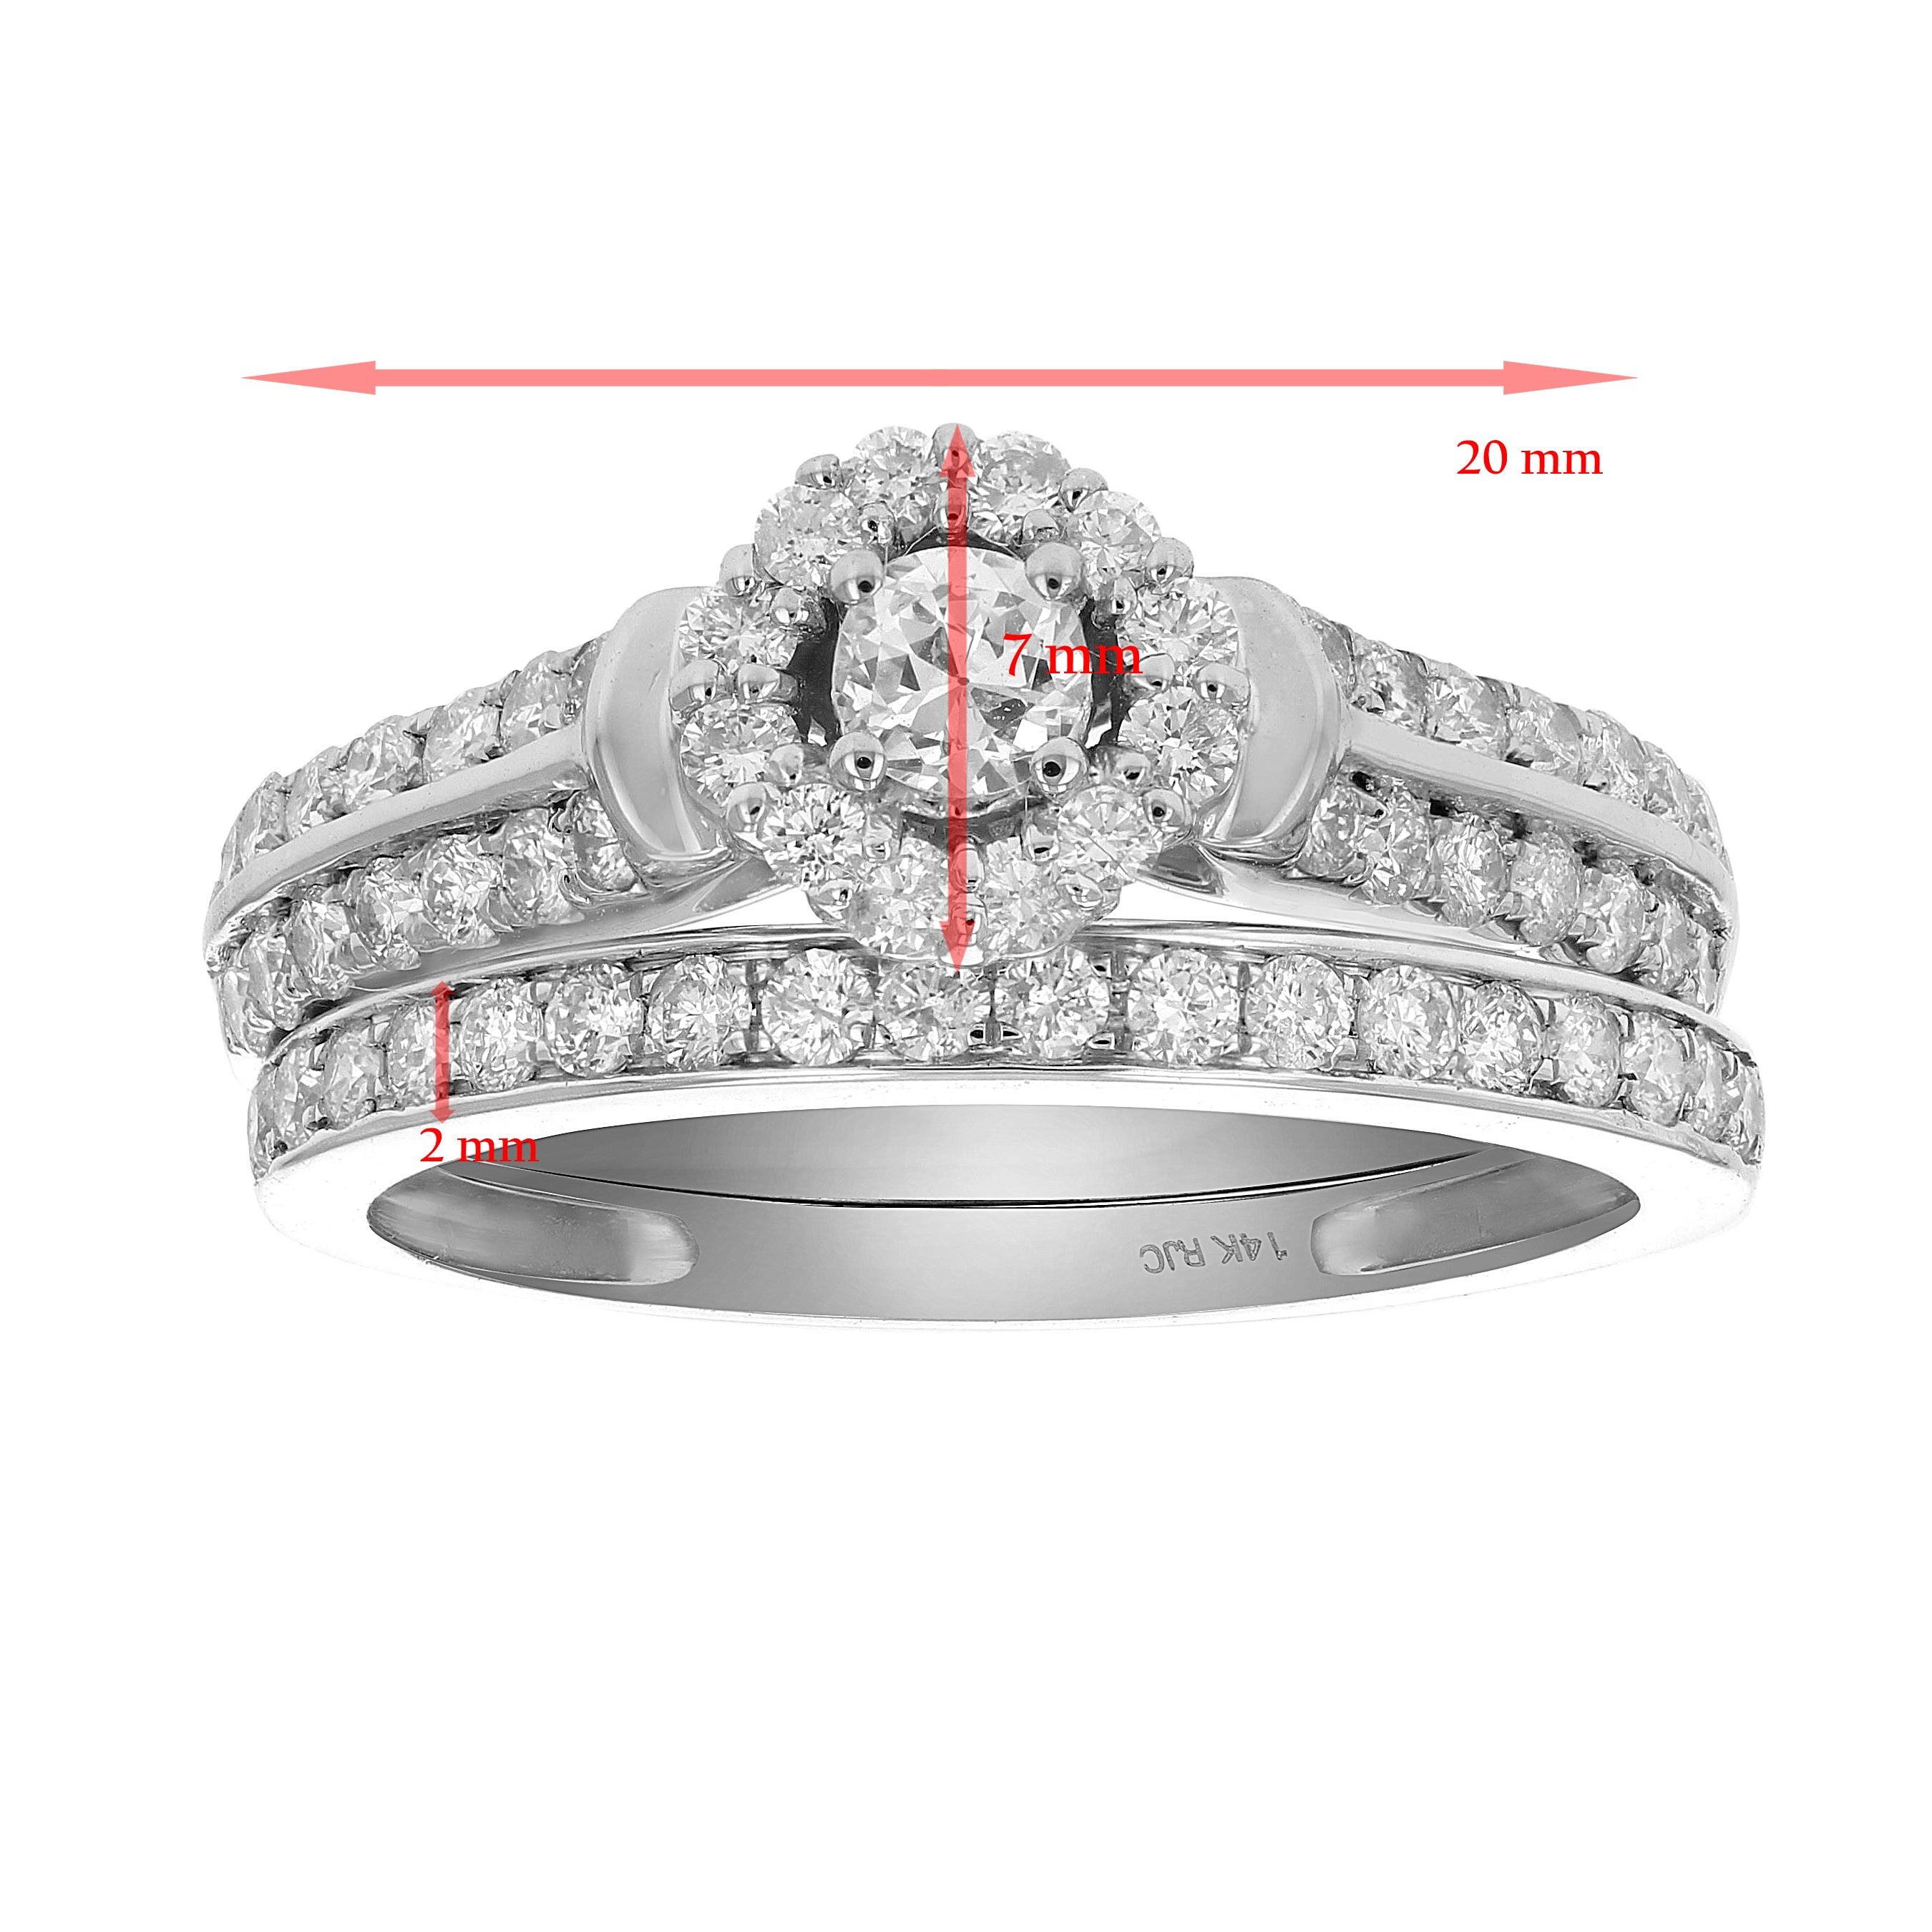 faux ct products beloved cubic stone cut prong cz engagement round solitaire zirconia sparkles anniversary serendipity rings wedding ring carat tampla diamond